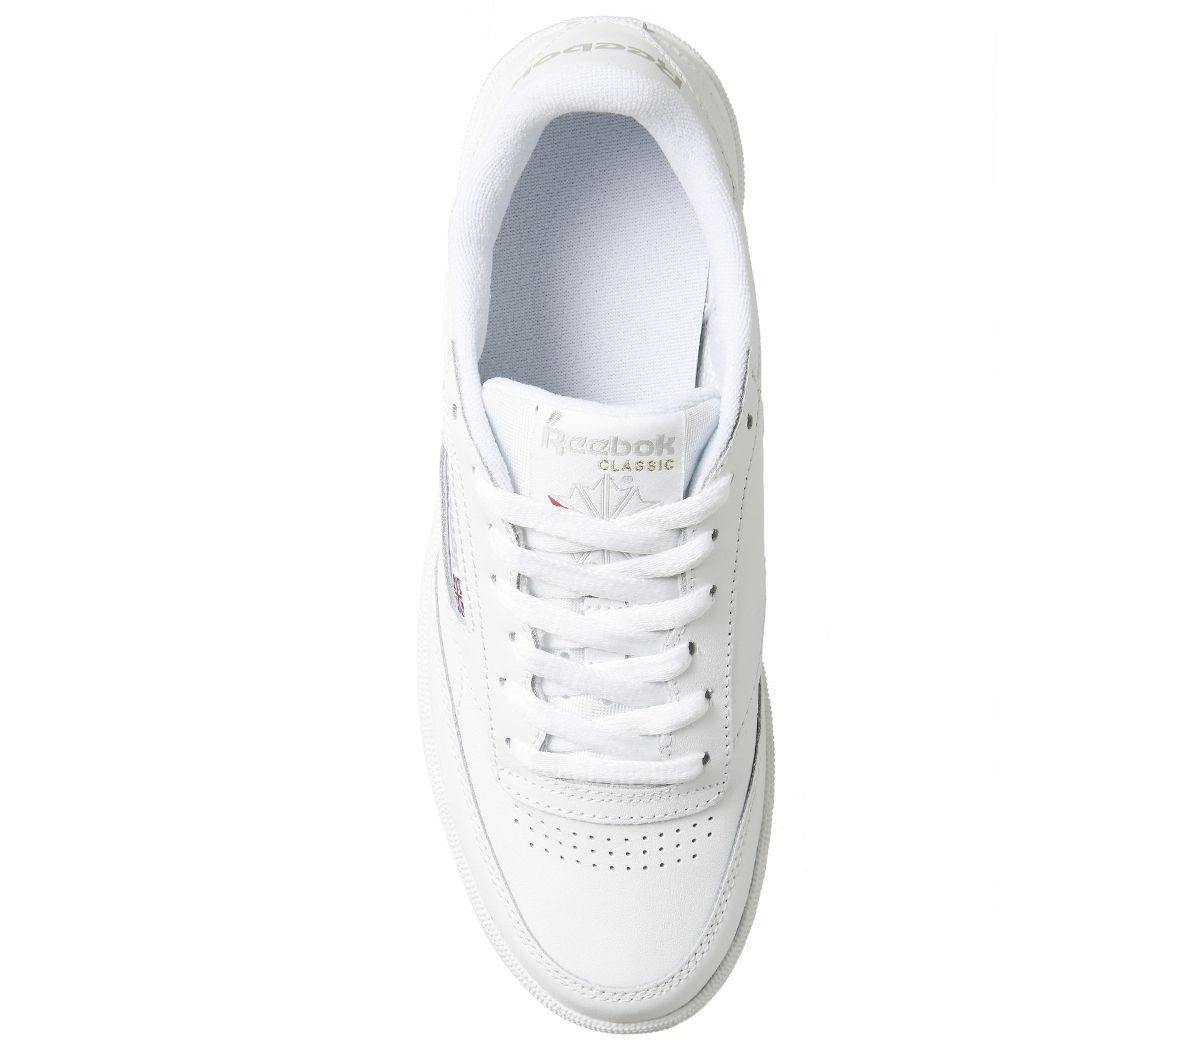 397f739e5fe Womens Reebok Club C 85 Trainers White Grey Gum Trainers Shoes